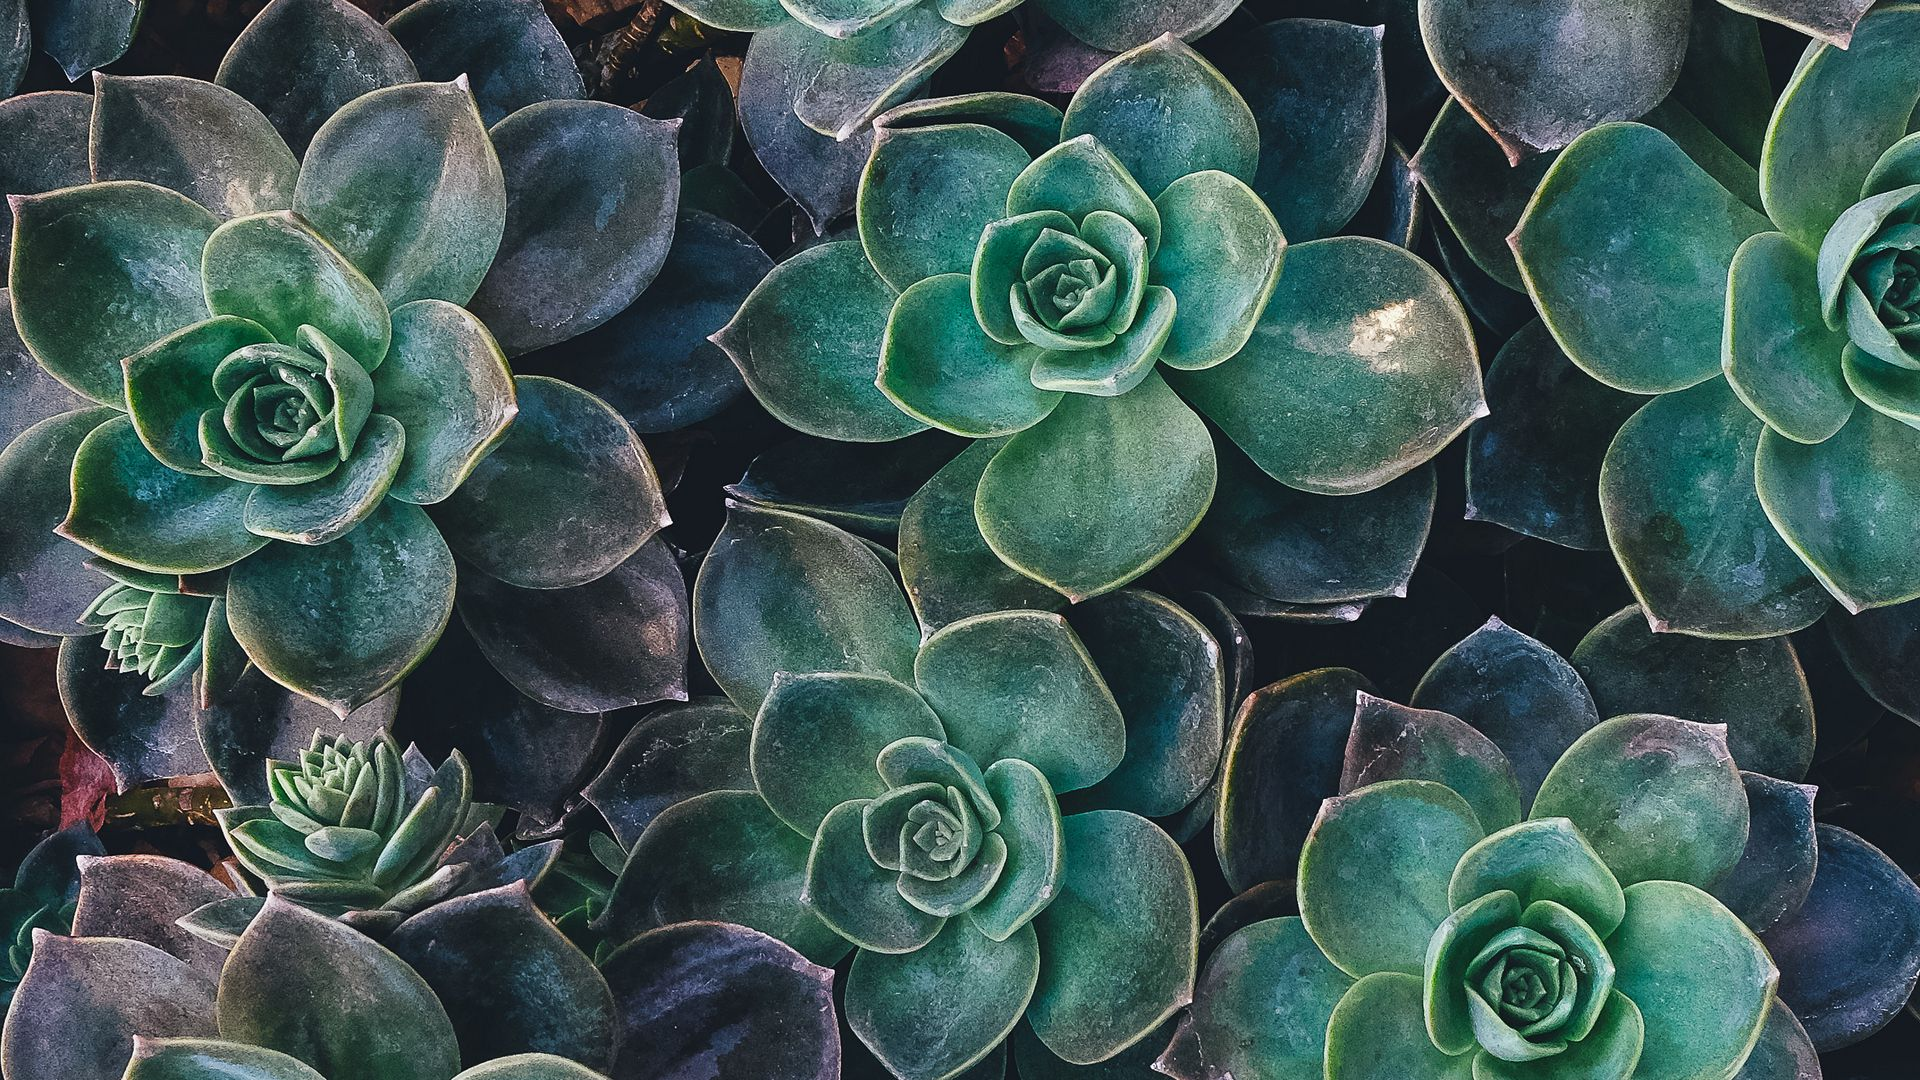 Download Wallpaper 1920x1080 Echeveria Succulents Plant